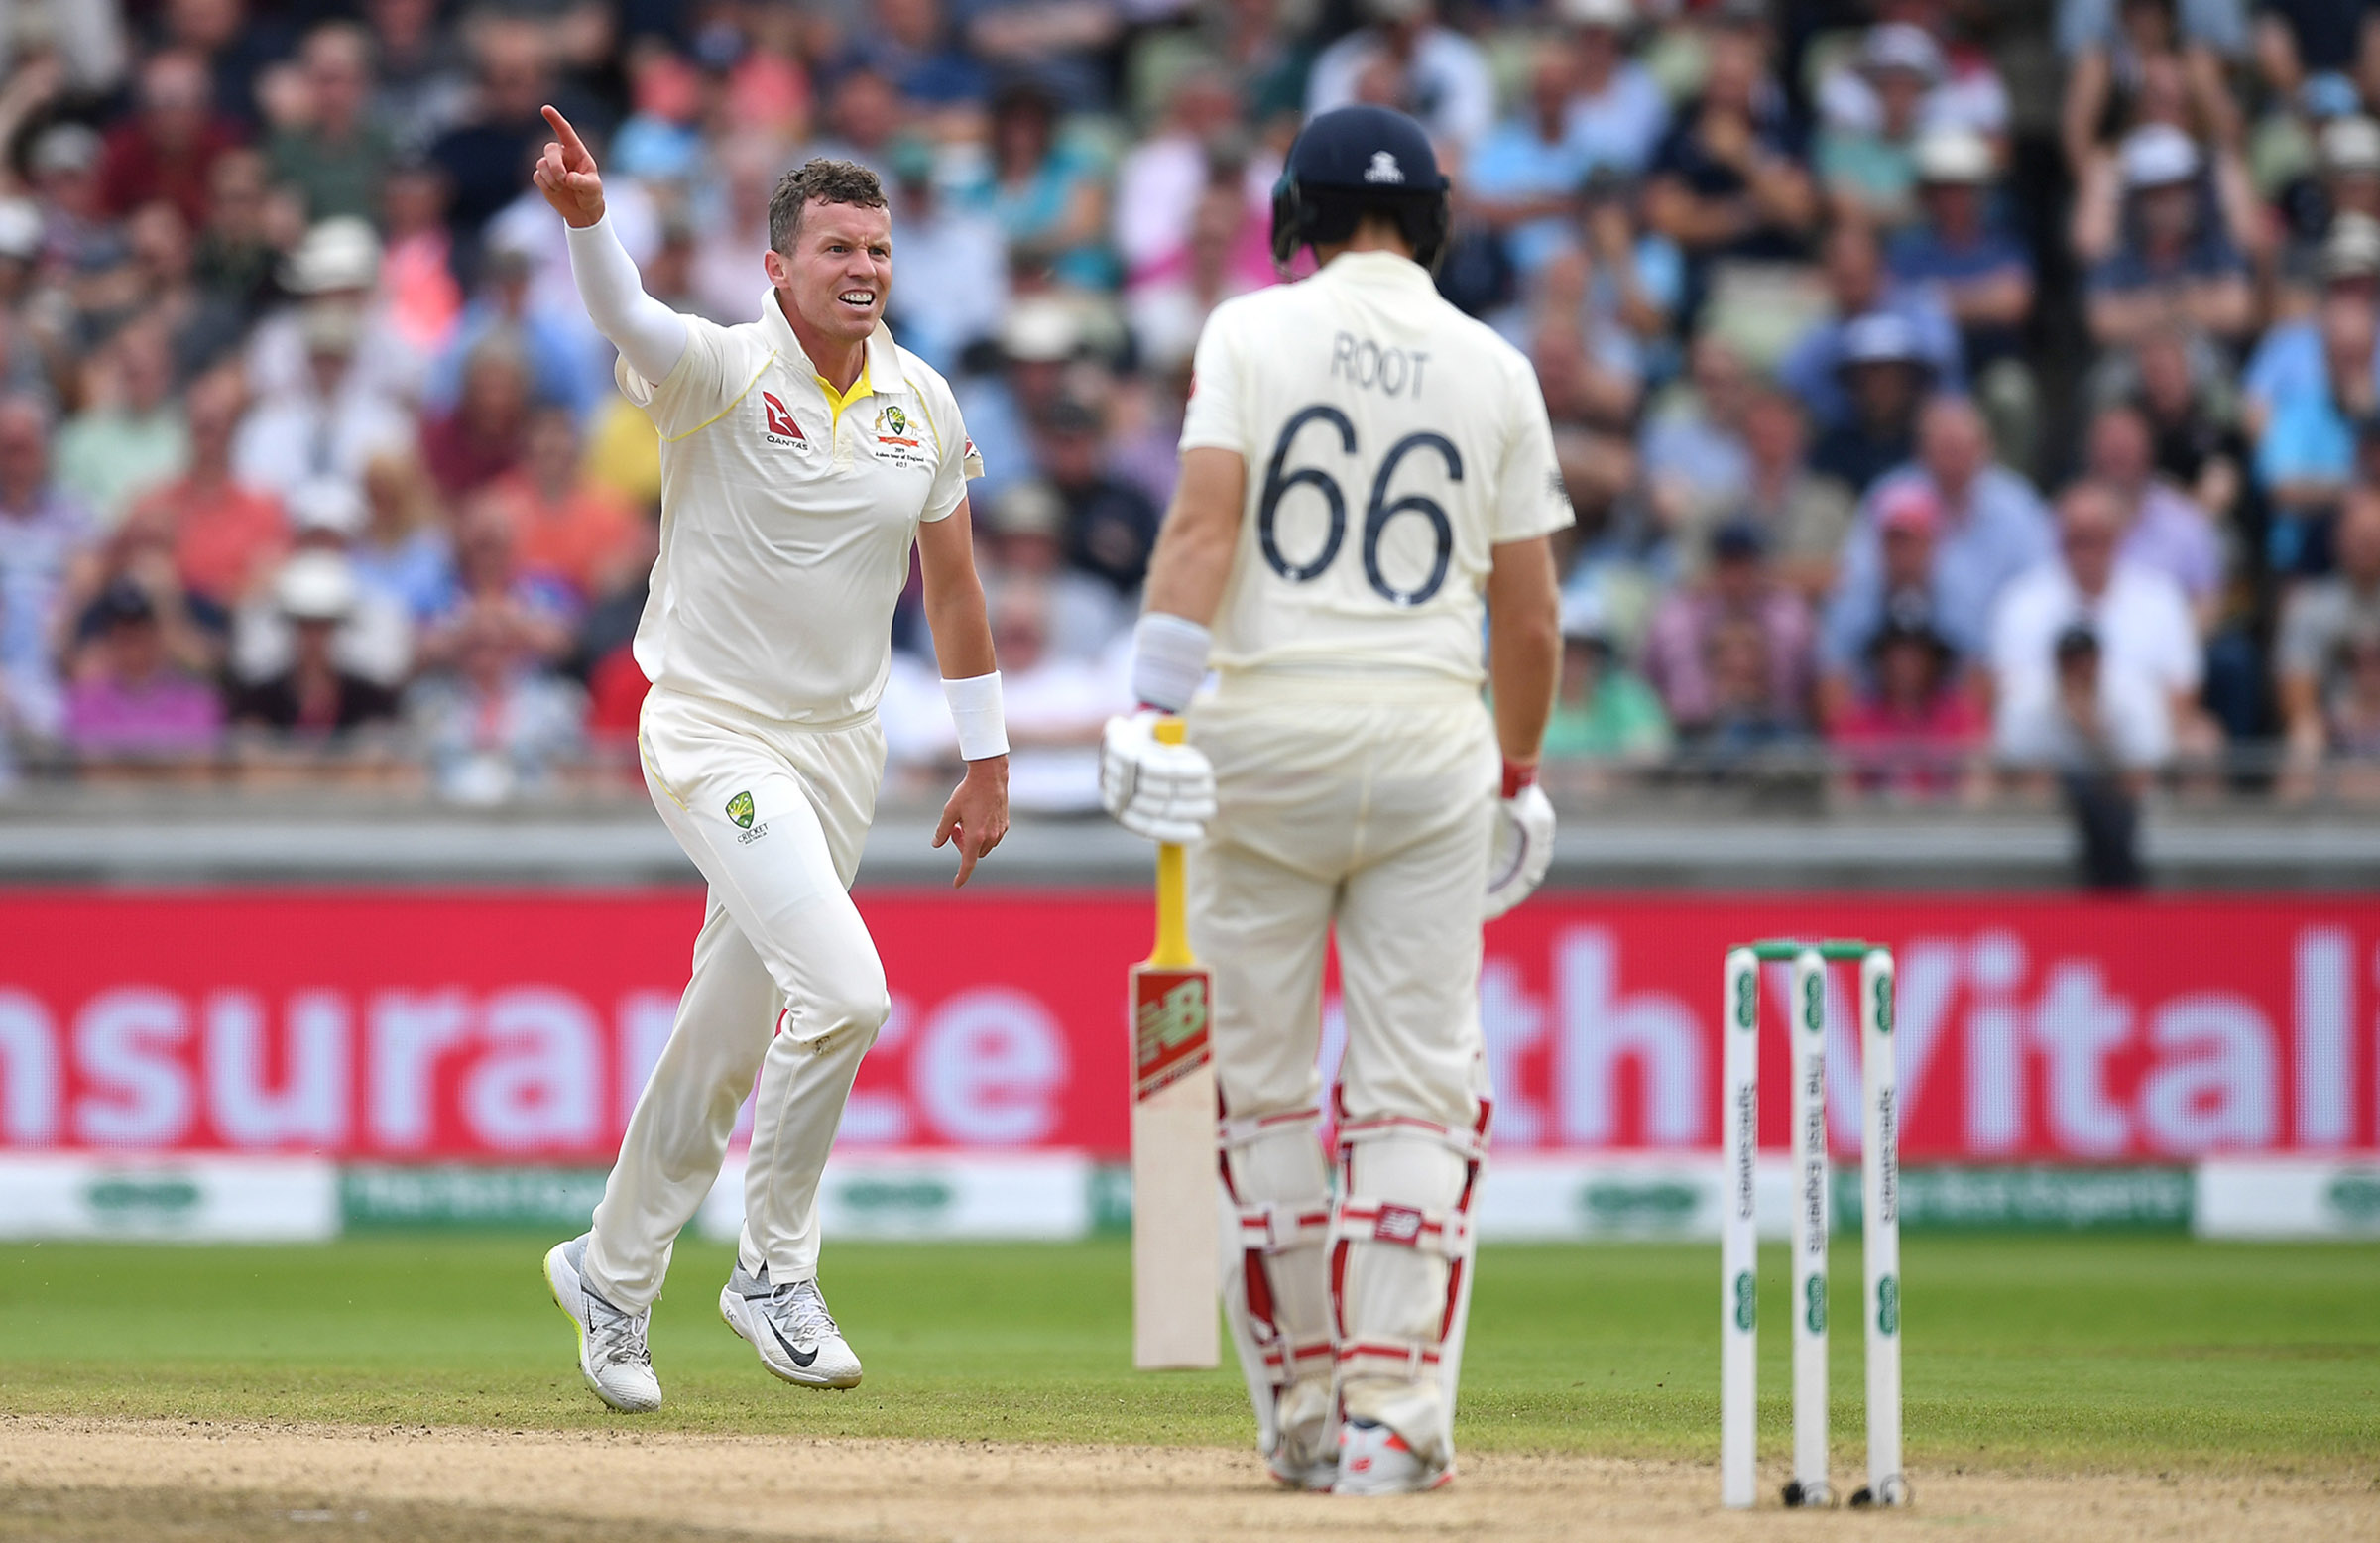 Siddle was one of five fast bowlers used in the 2019 Ashes // Getty